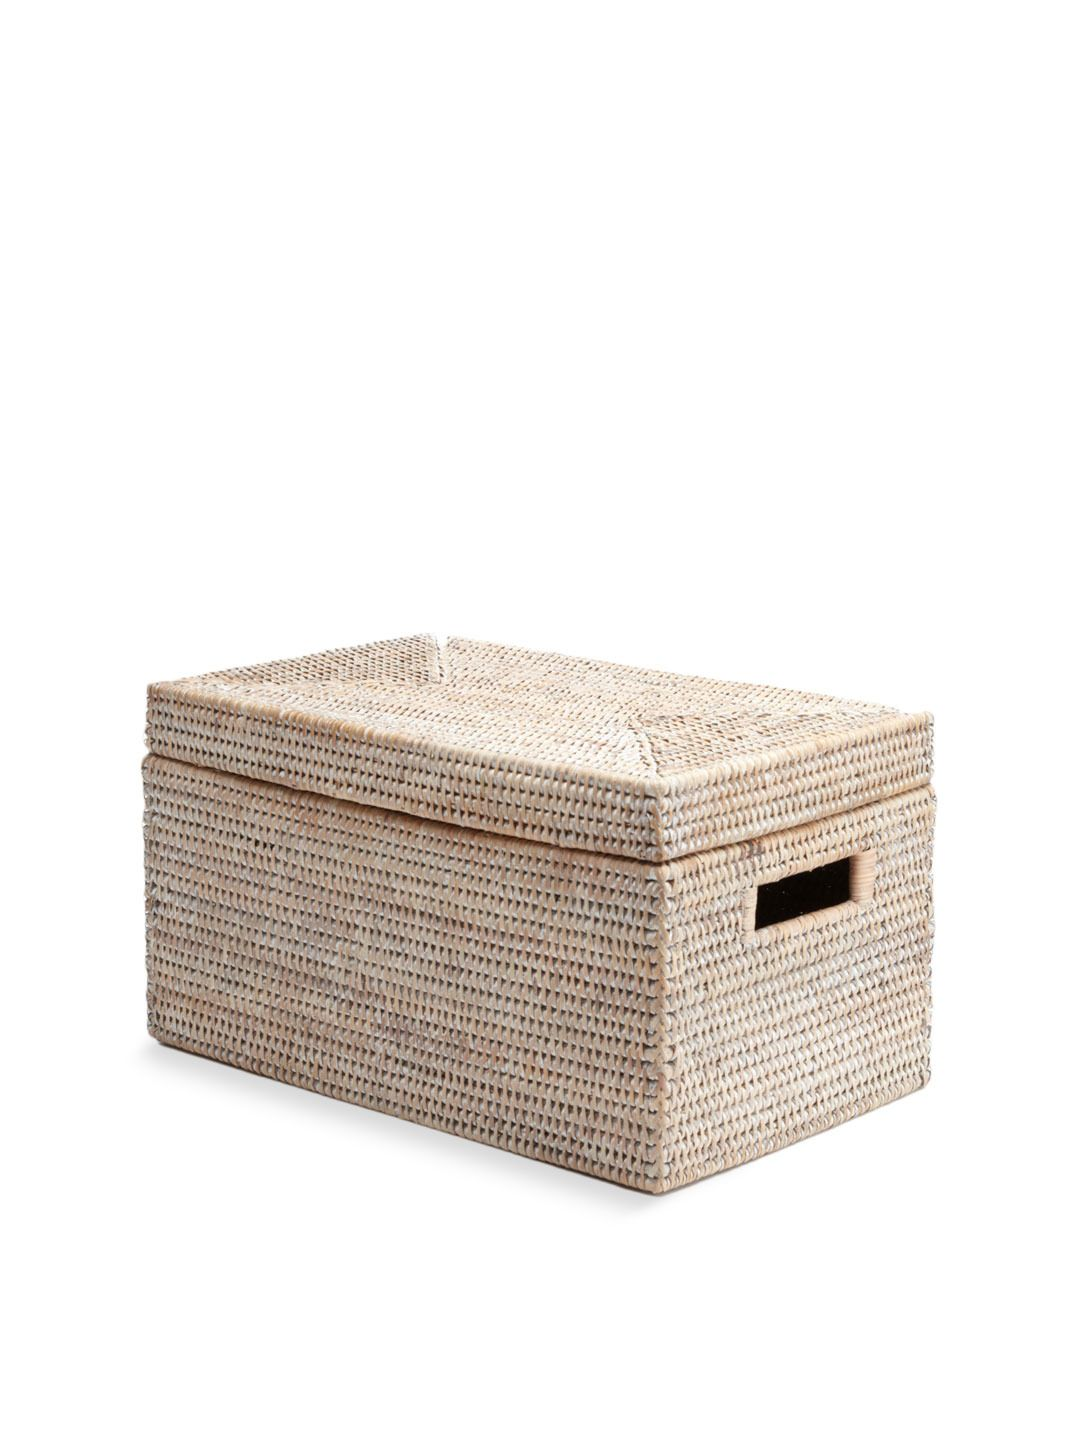 Matahari Inc. U2022 Rectangular Storage Basket: